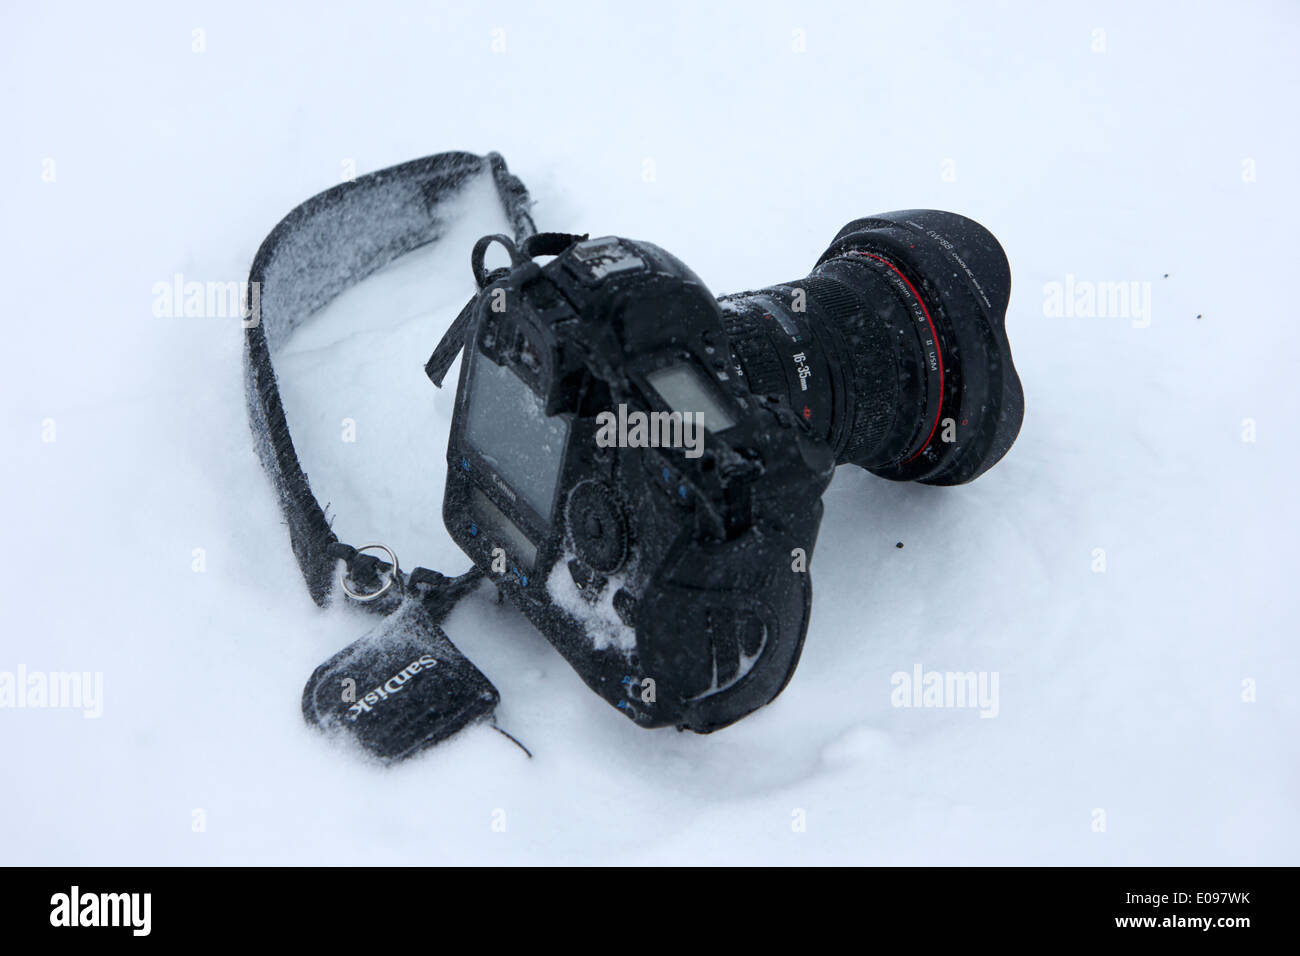 canon 1dsmk3 camera with 16-35 mk2 lens and sandisk cards owned by photographer Joe Fox getting buried in the snow antarctica - Stock Image